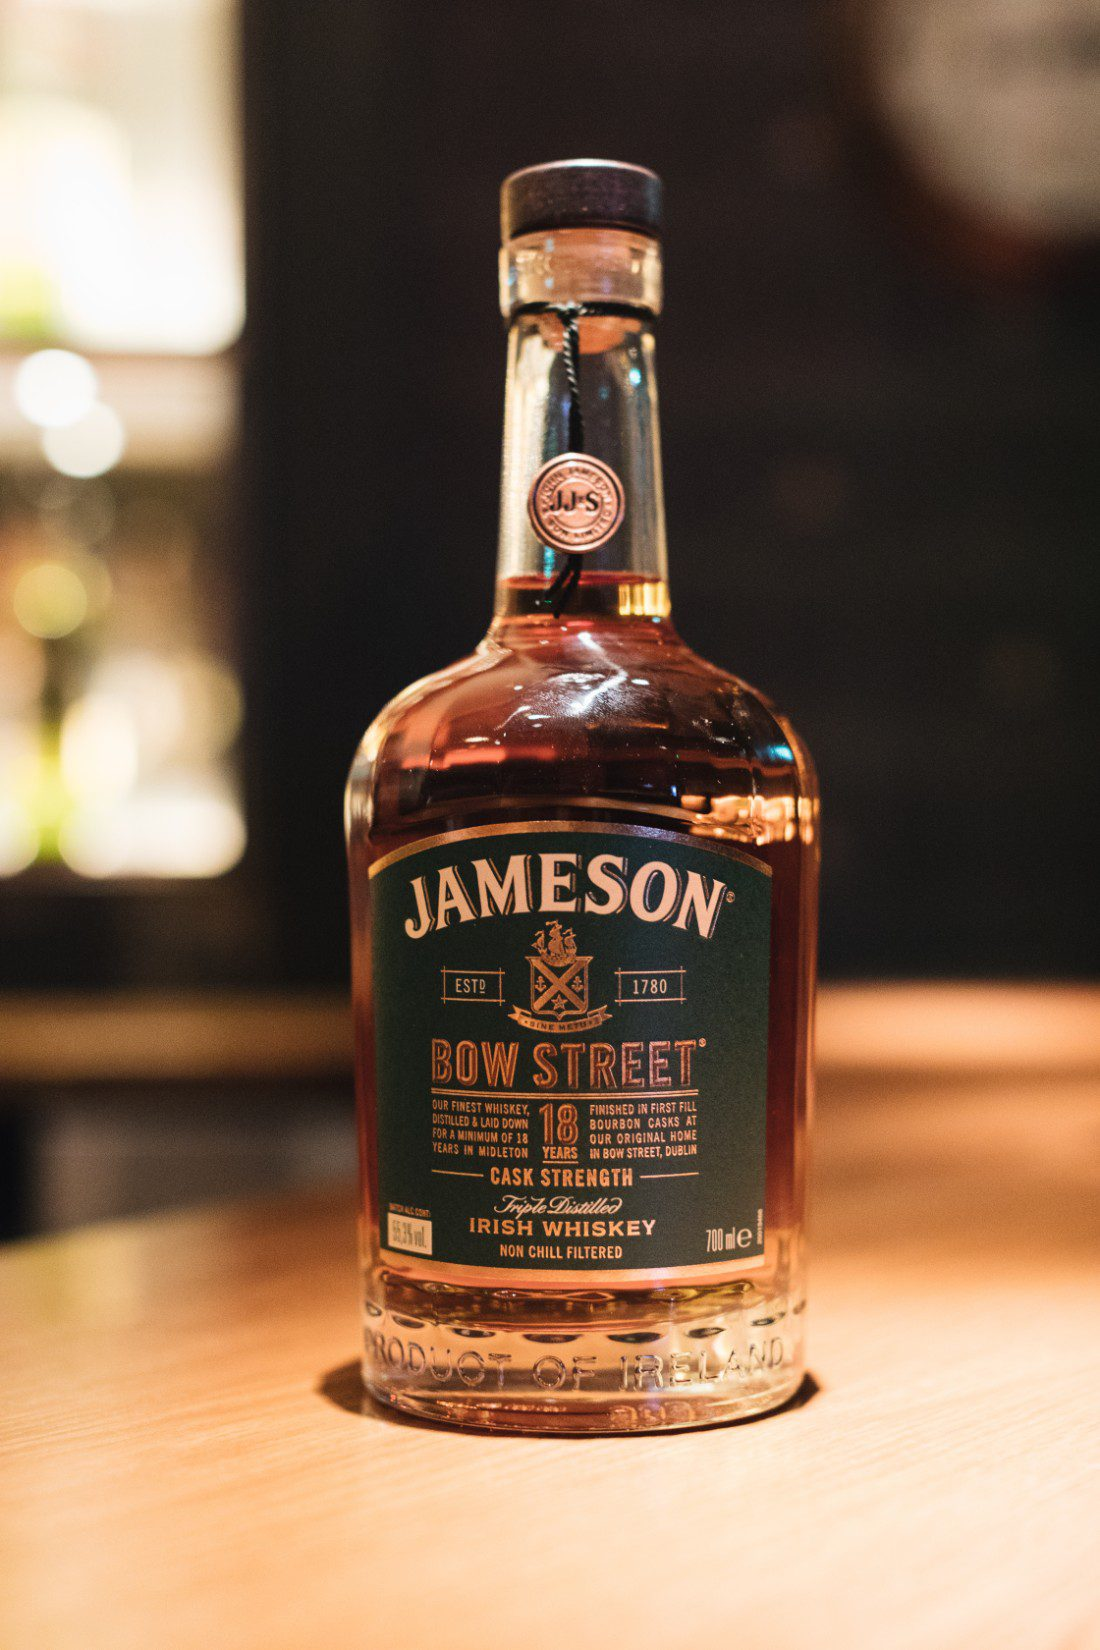 Jameson Bow Street 18 Years Cask Strength Whisky